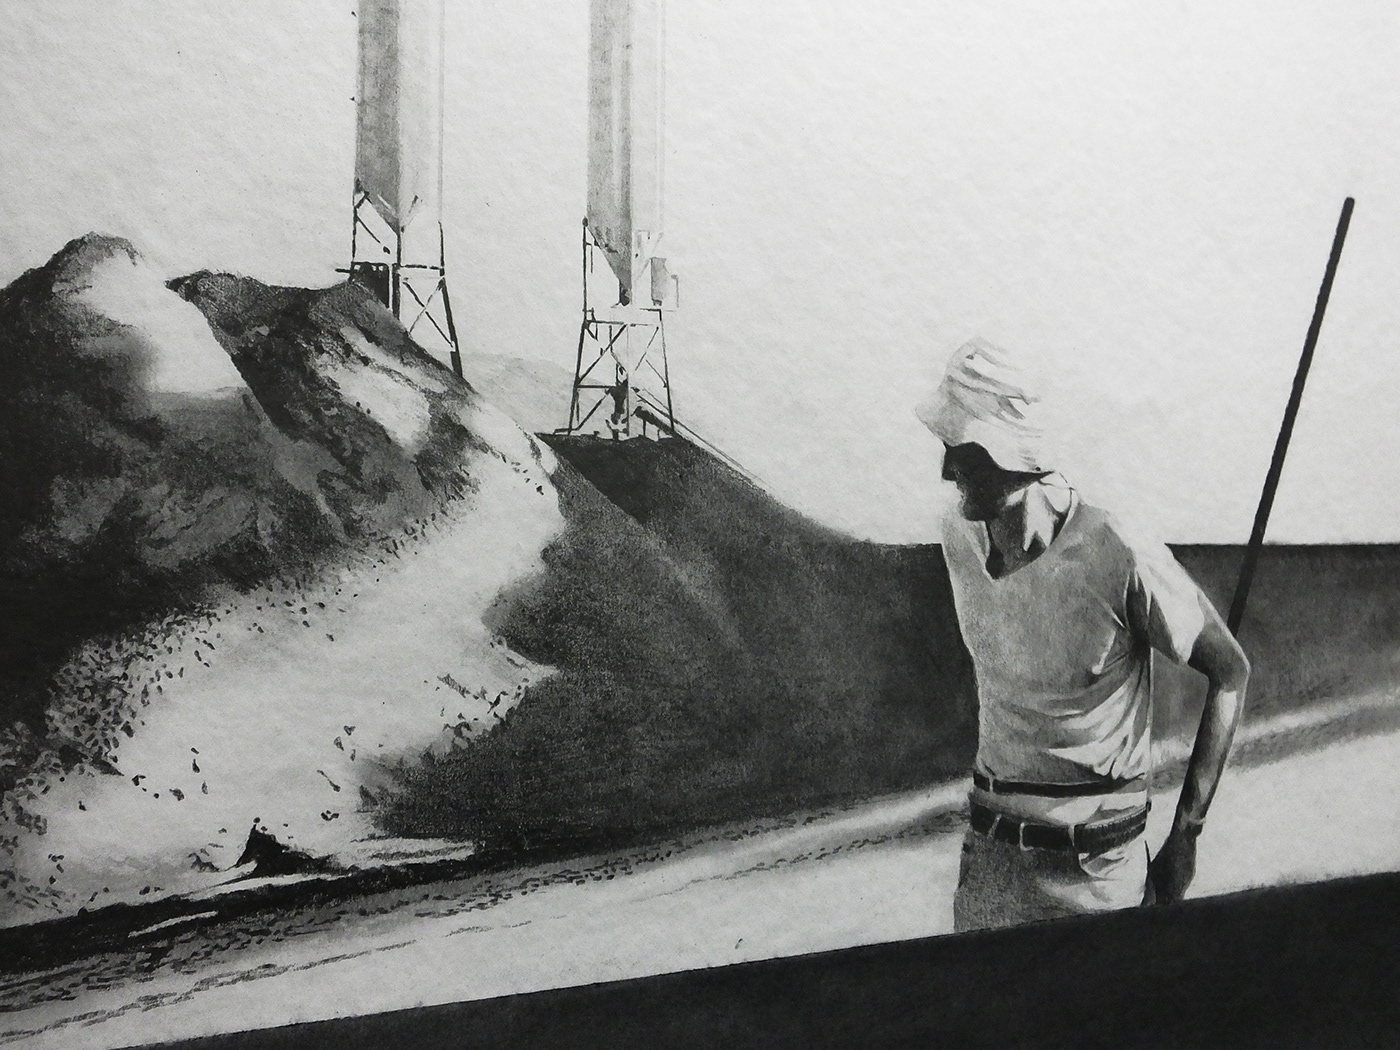 pencil Human Figure Realism Latin America construction black and white contemporary art